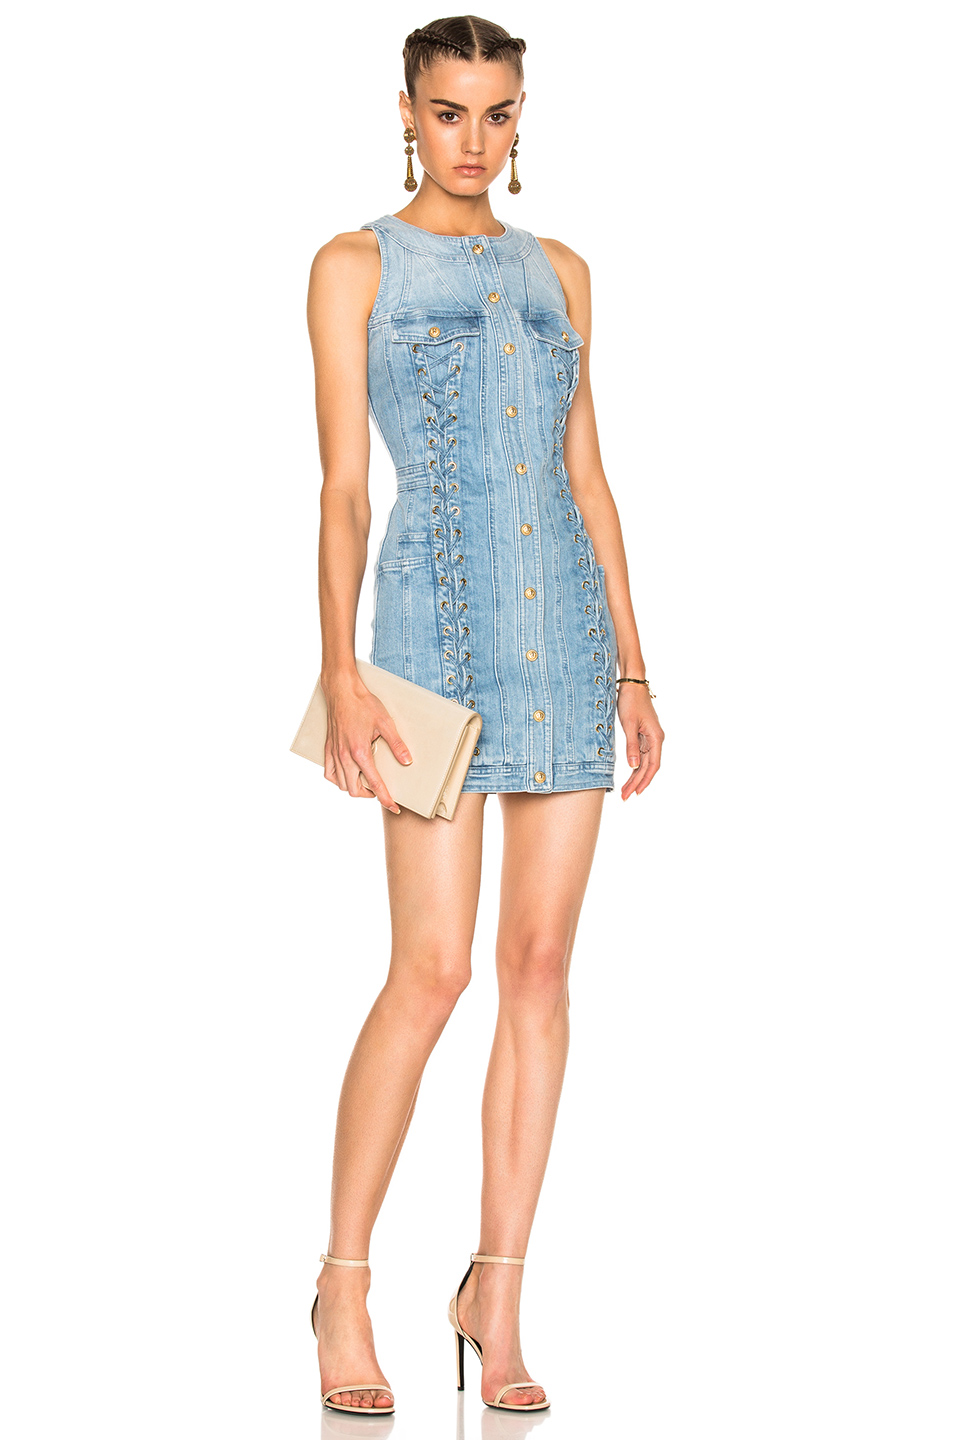 BALMAIN Lace Up Denim Mini Dress in Blue